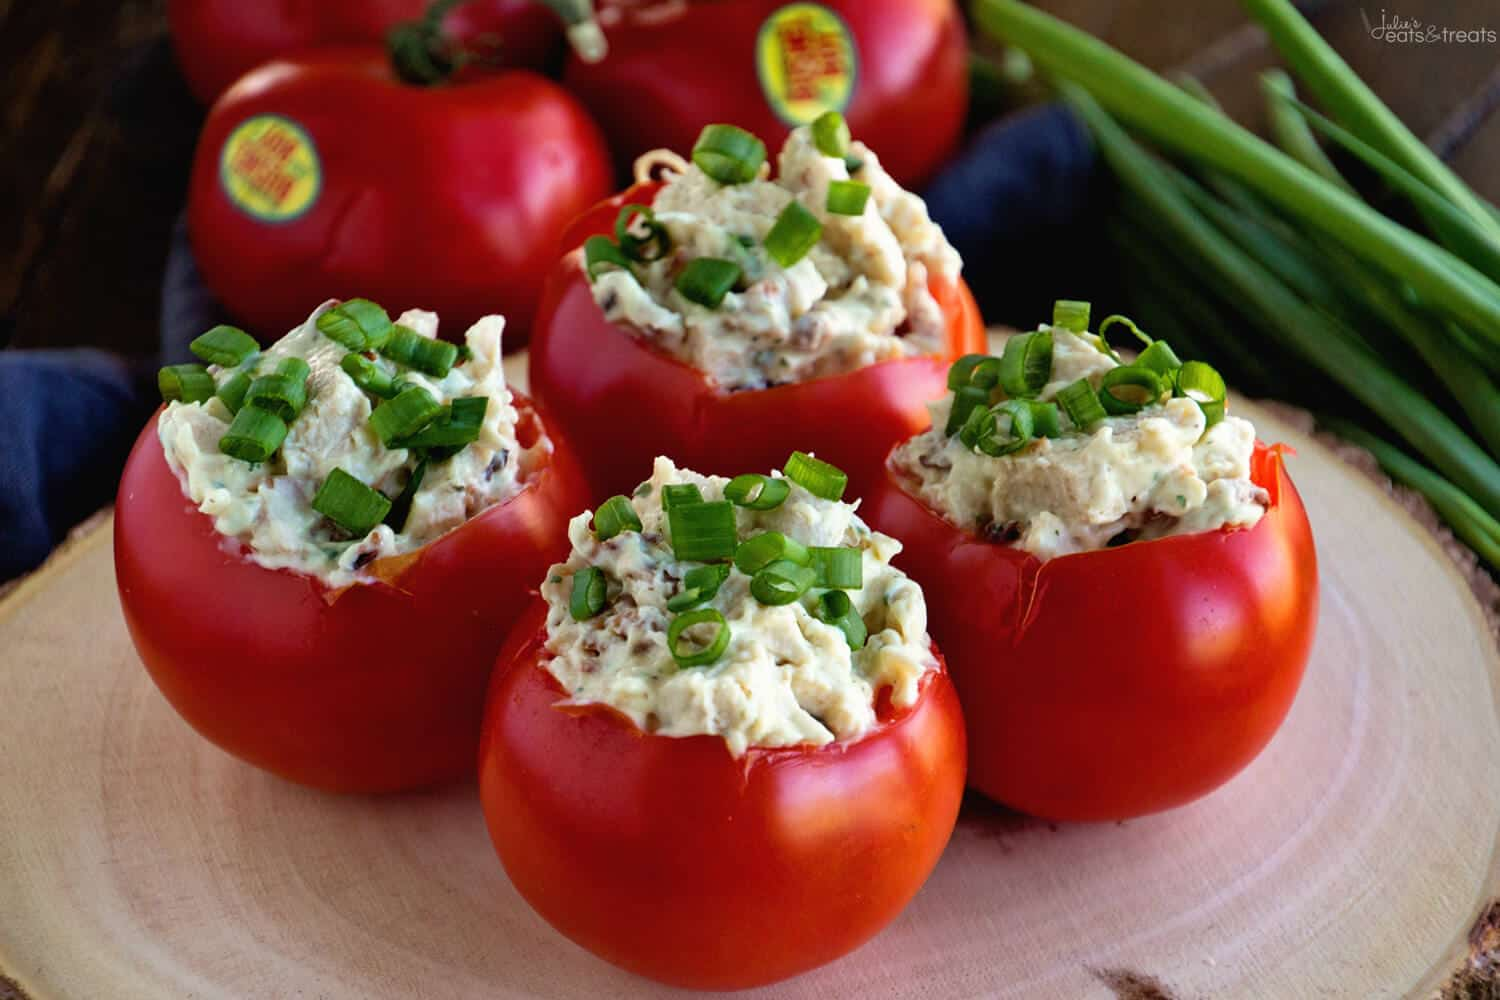 Bacon Ranch Chicken Salad Stuffed Tomatoes Recipe ~ Plump, Juicy Tomatoes Stuffed with a Delicious Chicken Bacon Ranch Salad! The Perfect Healthy, Low Carb Recipe for Summer!